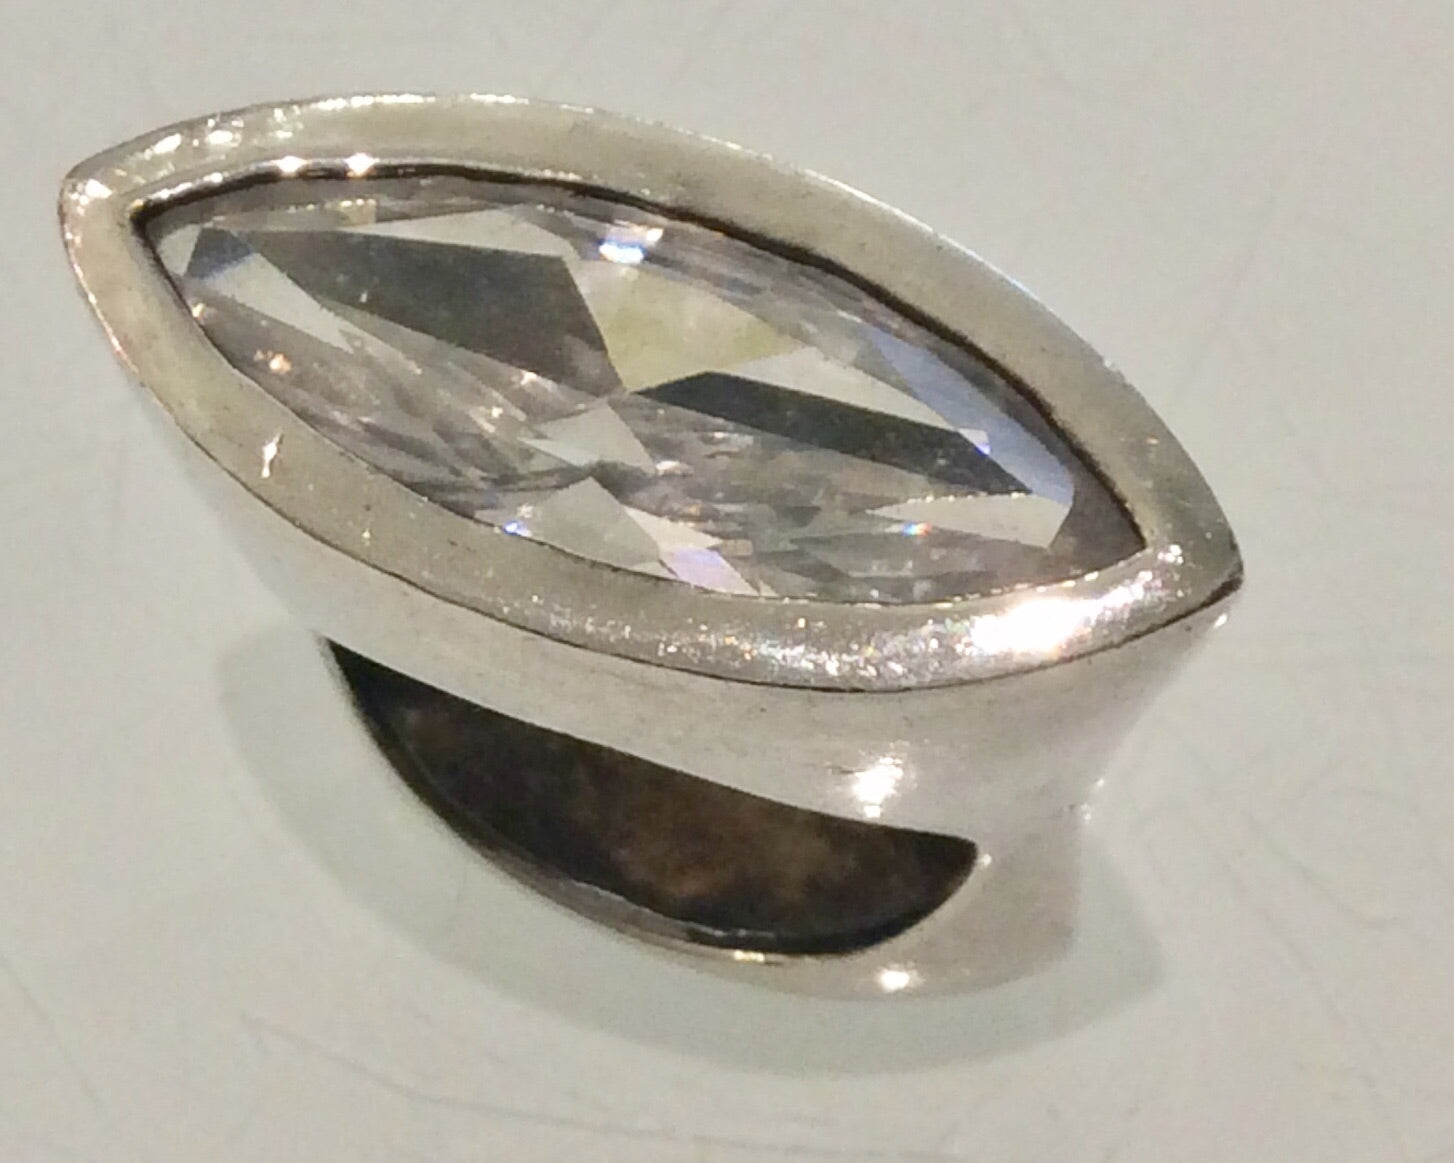 Raised silver ring with crystal inset